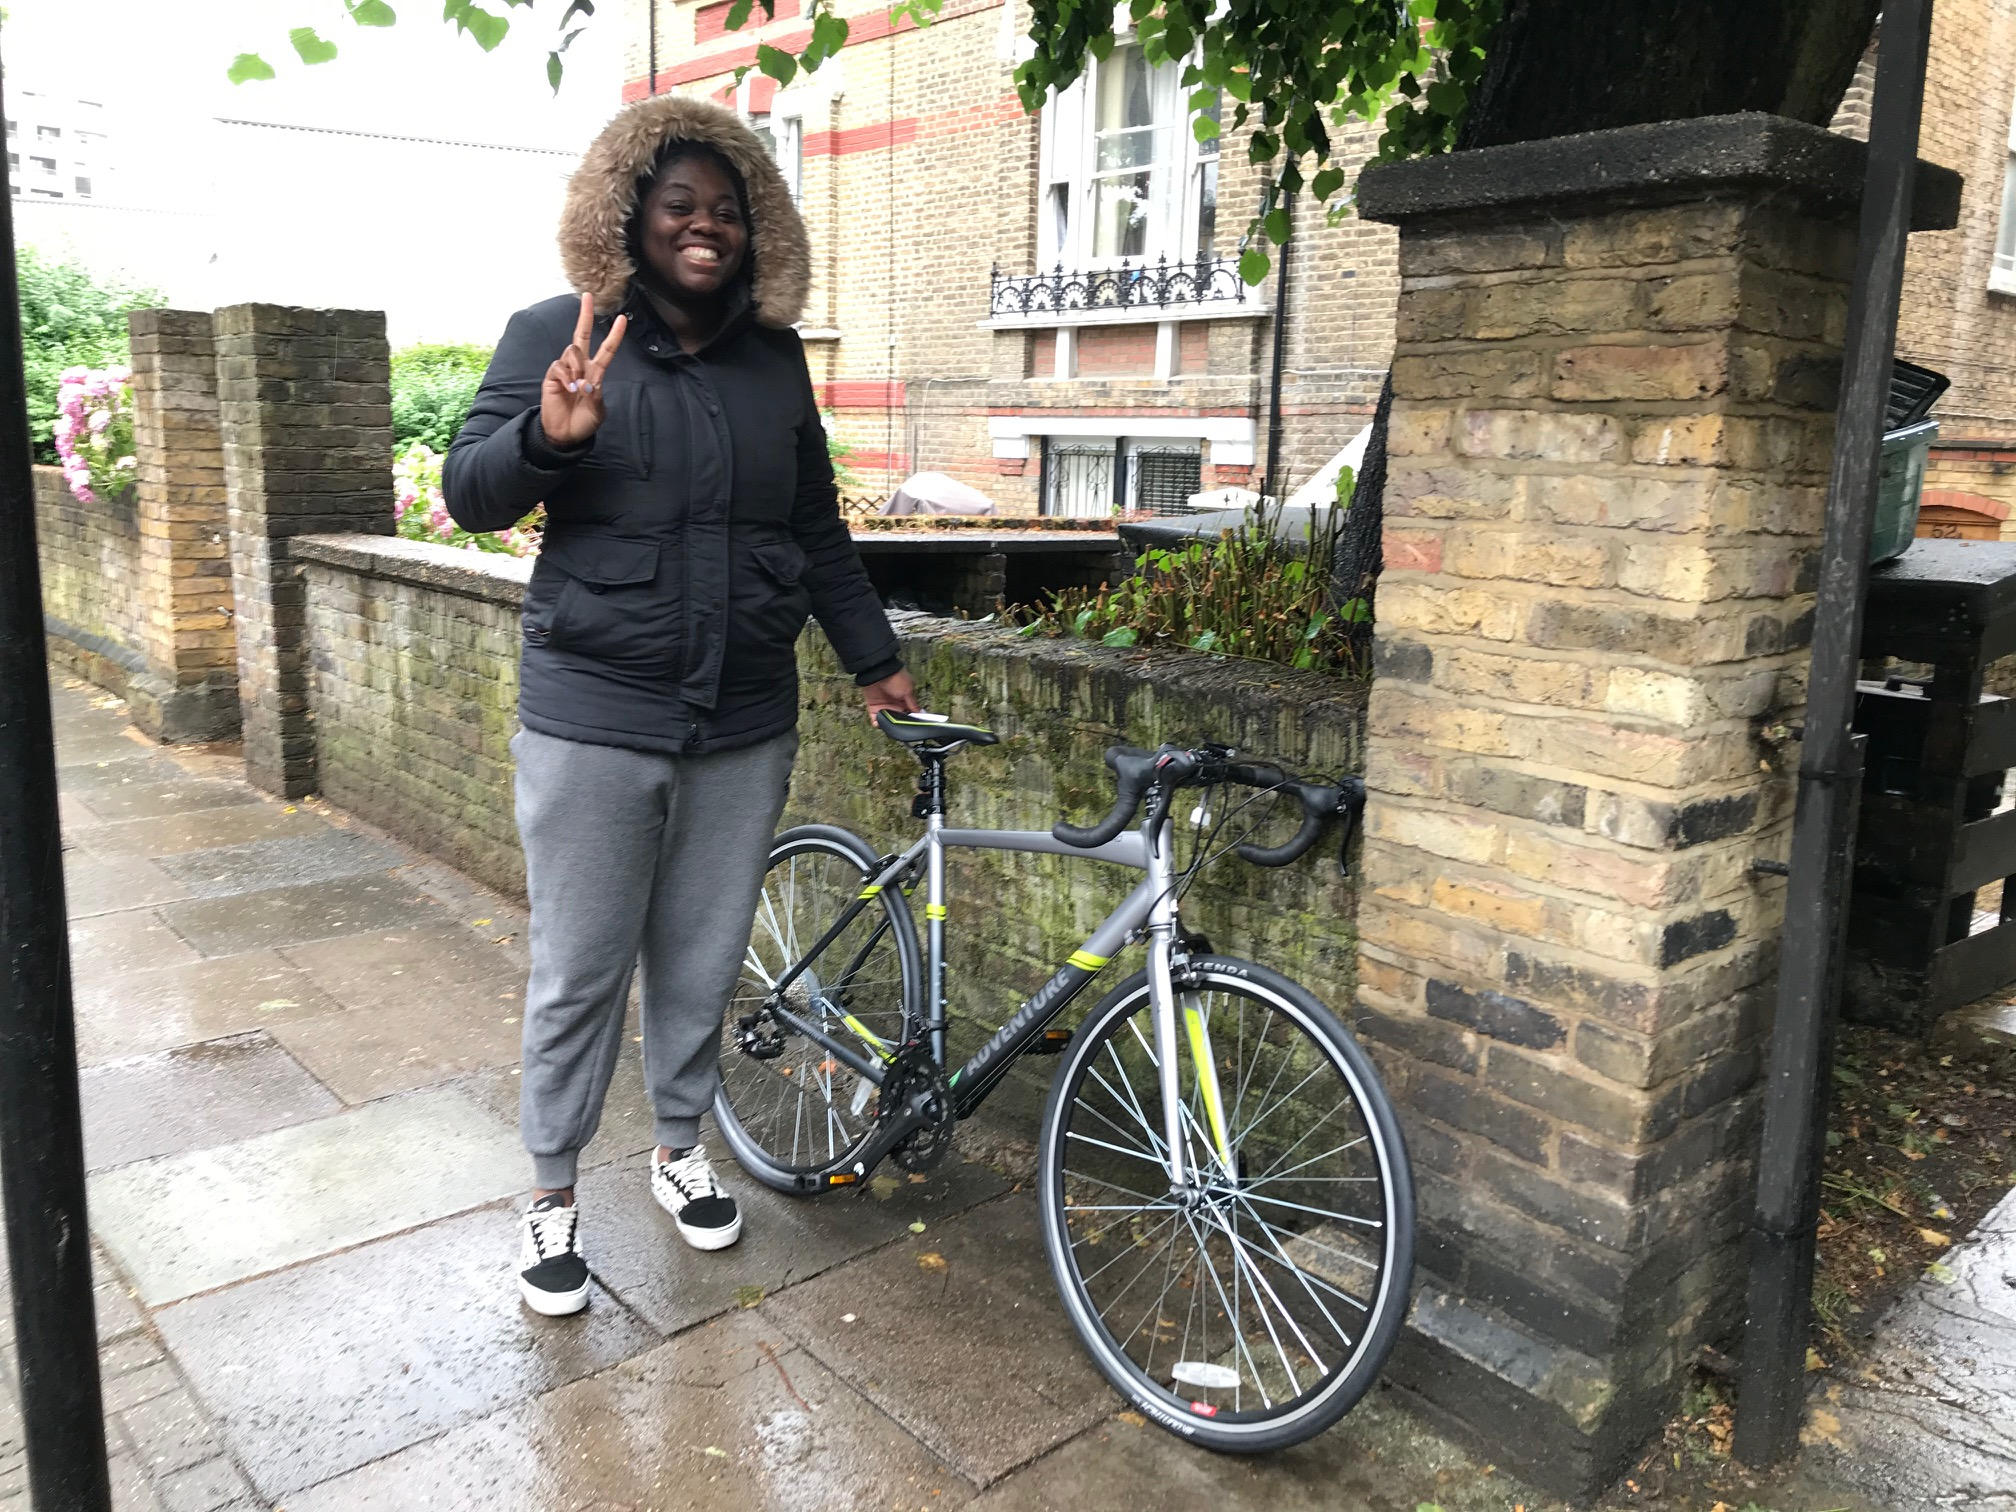 A woman stands on the pavement of a city street with a new road bike alongside, smiling at the camera and flashing a peace sign